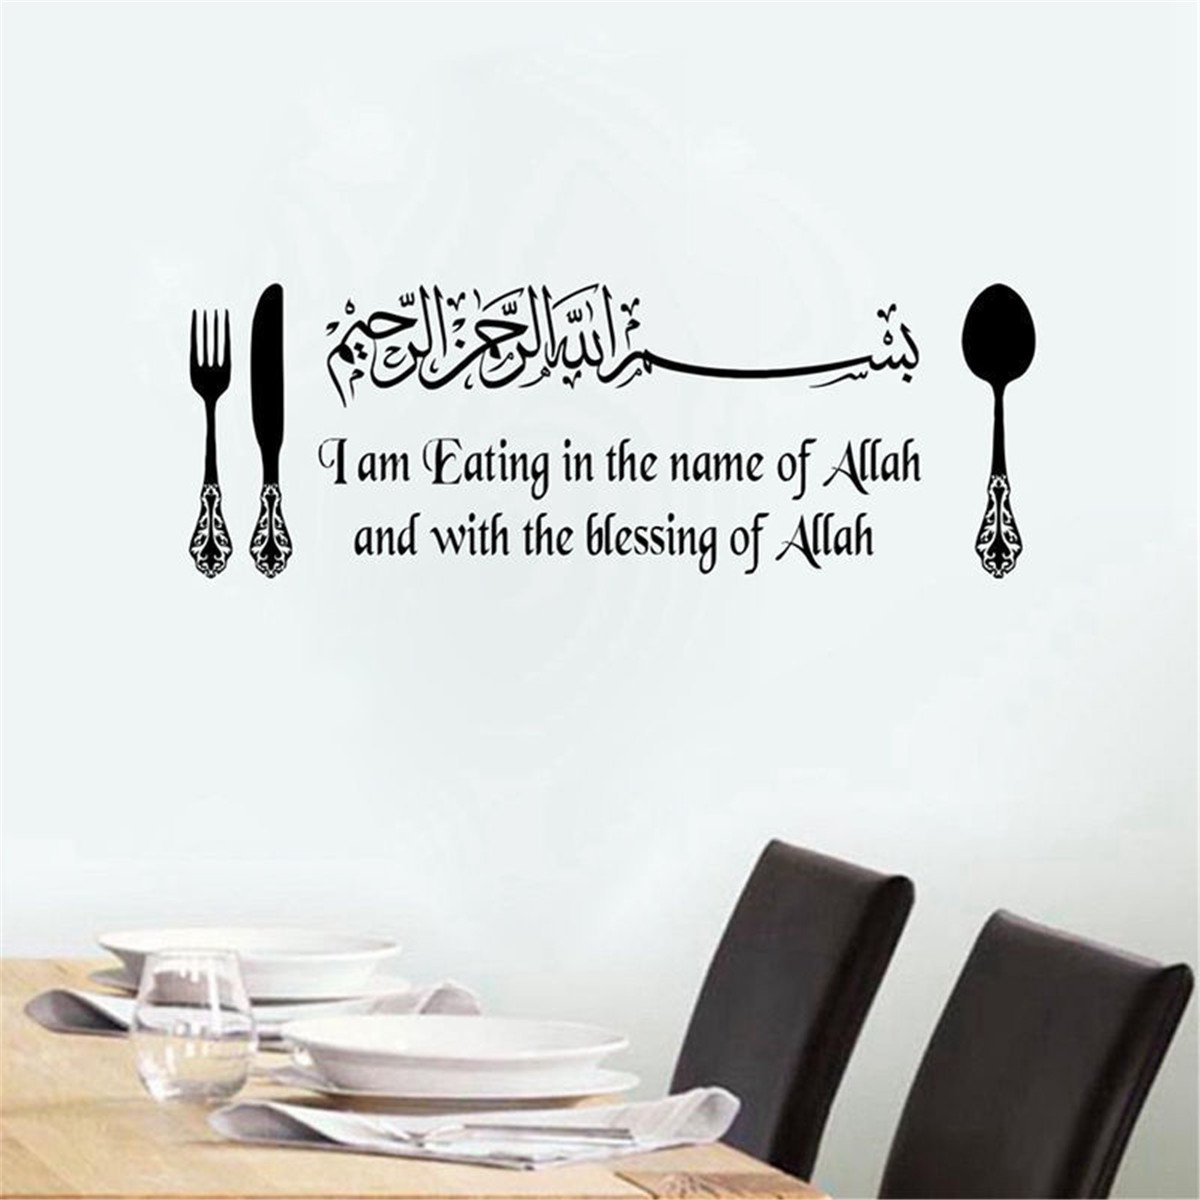 Islamic Vinyl Wall Decor Stickers Eating In The Name Of Allah Dining Kitchen Art Decal Intended For Casual Country Eat Here Retro Wall Decor (View 22 of 30)